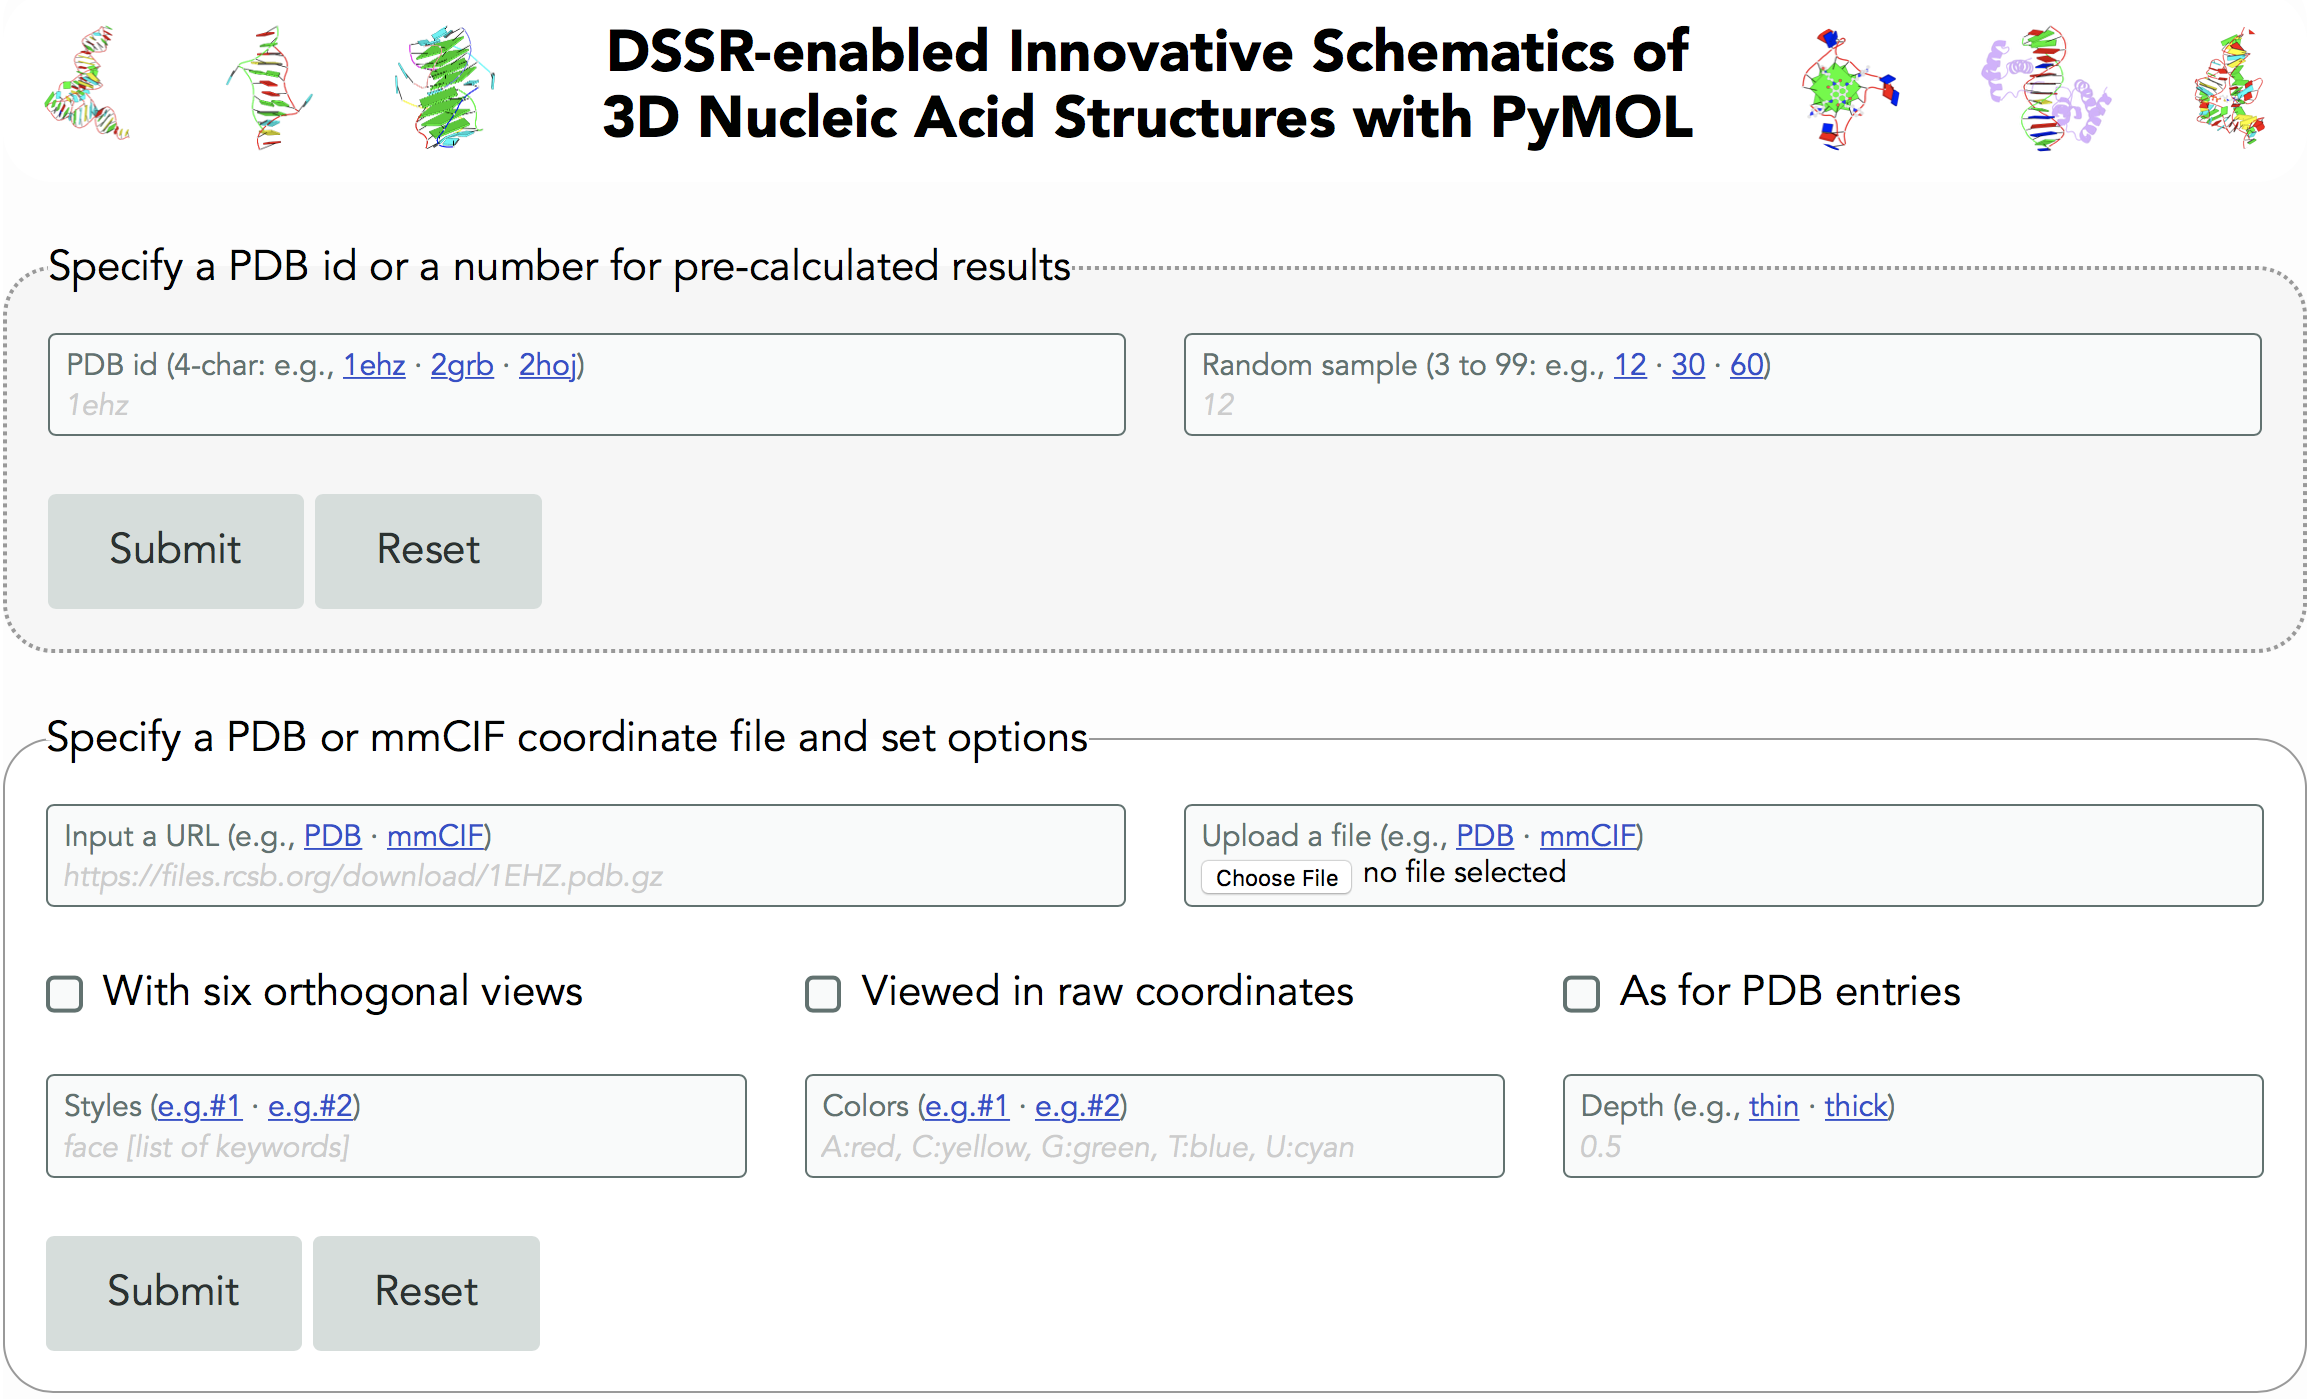 Screenshot of the homepage of DSSR/PyMOL schematics